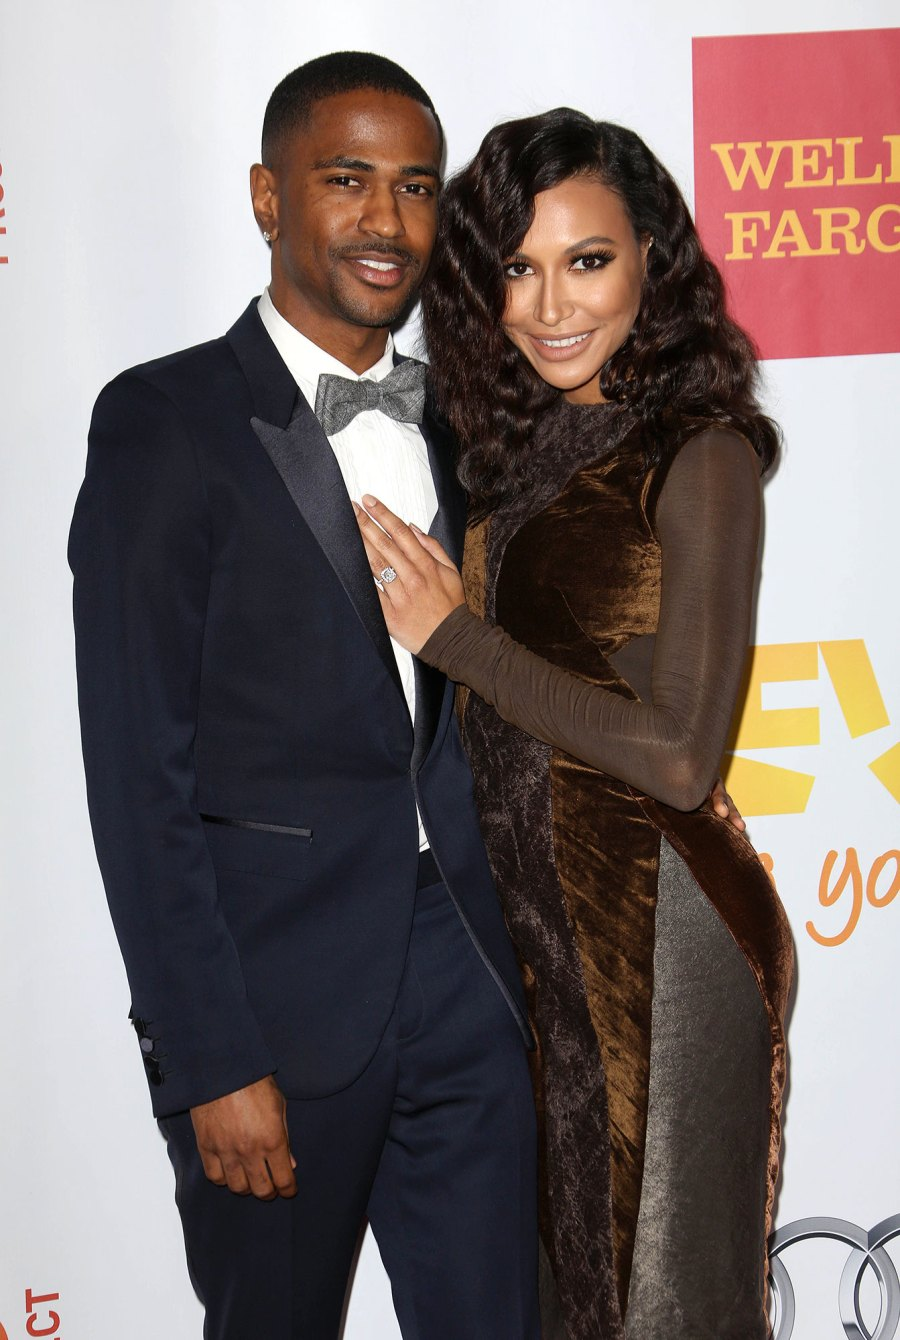 Big Sean and Naya Rivera Celebrity Couples Who Cut Their Engagements Short